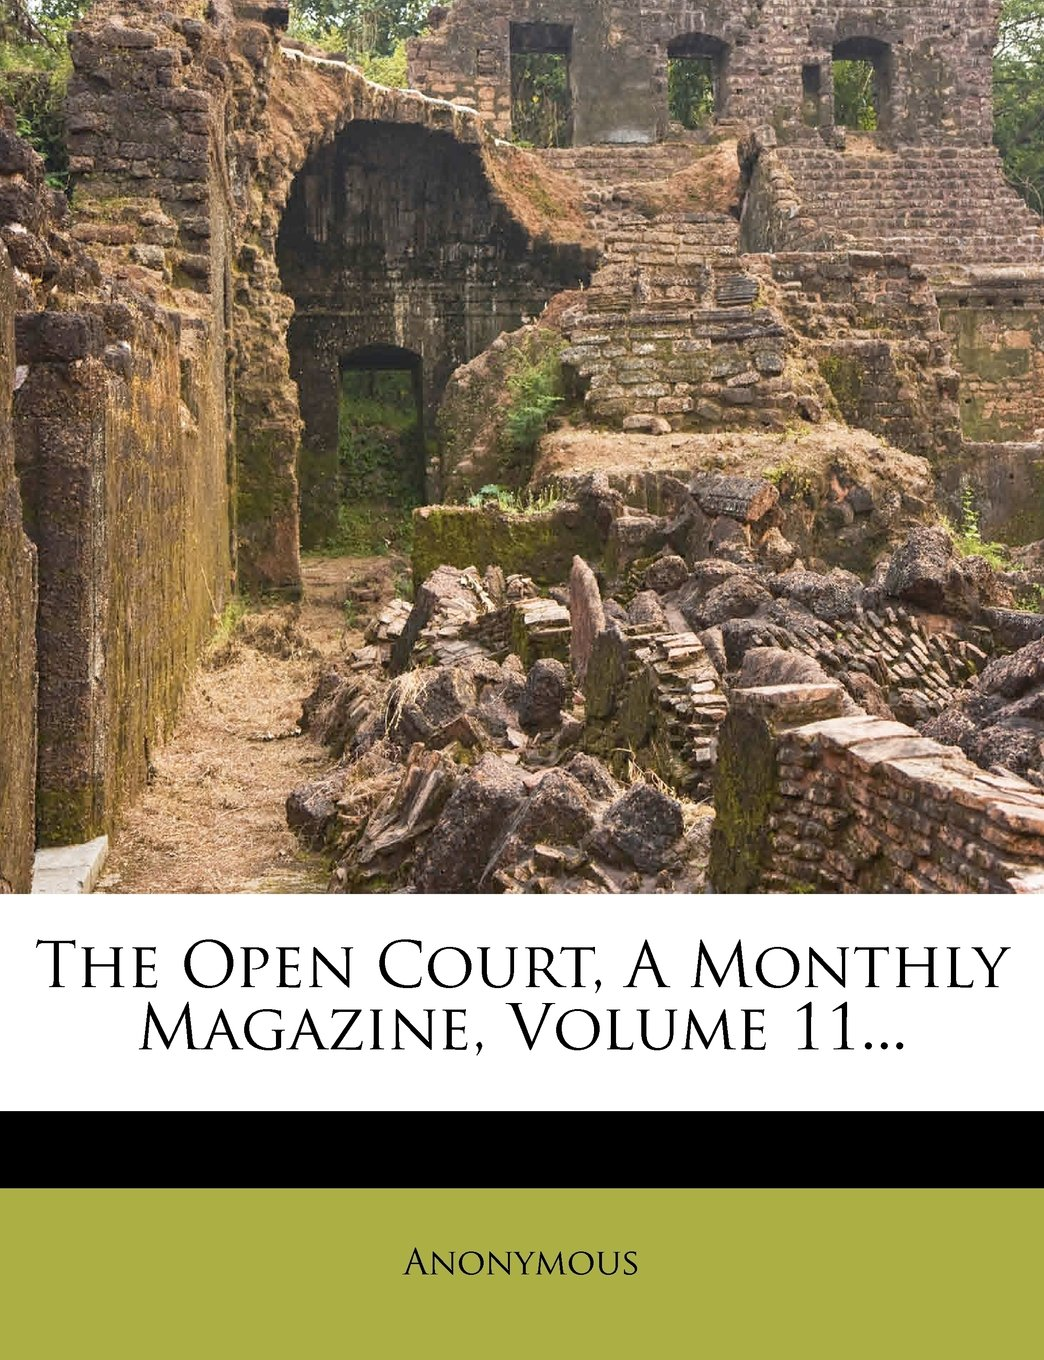 The Open Court, A Monthly Magazine, Volume 11... PDF